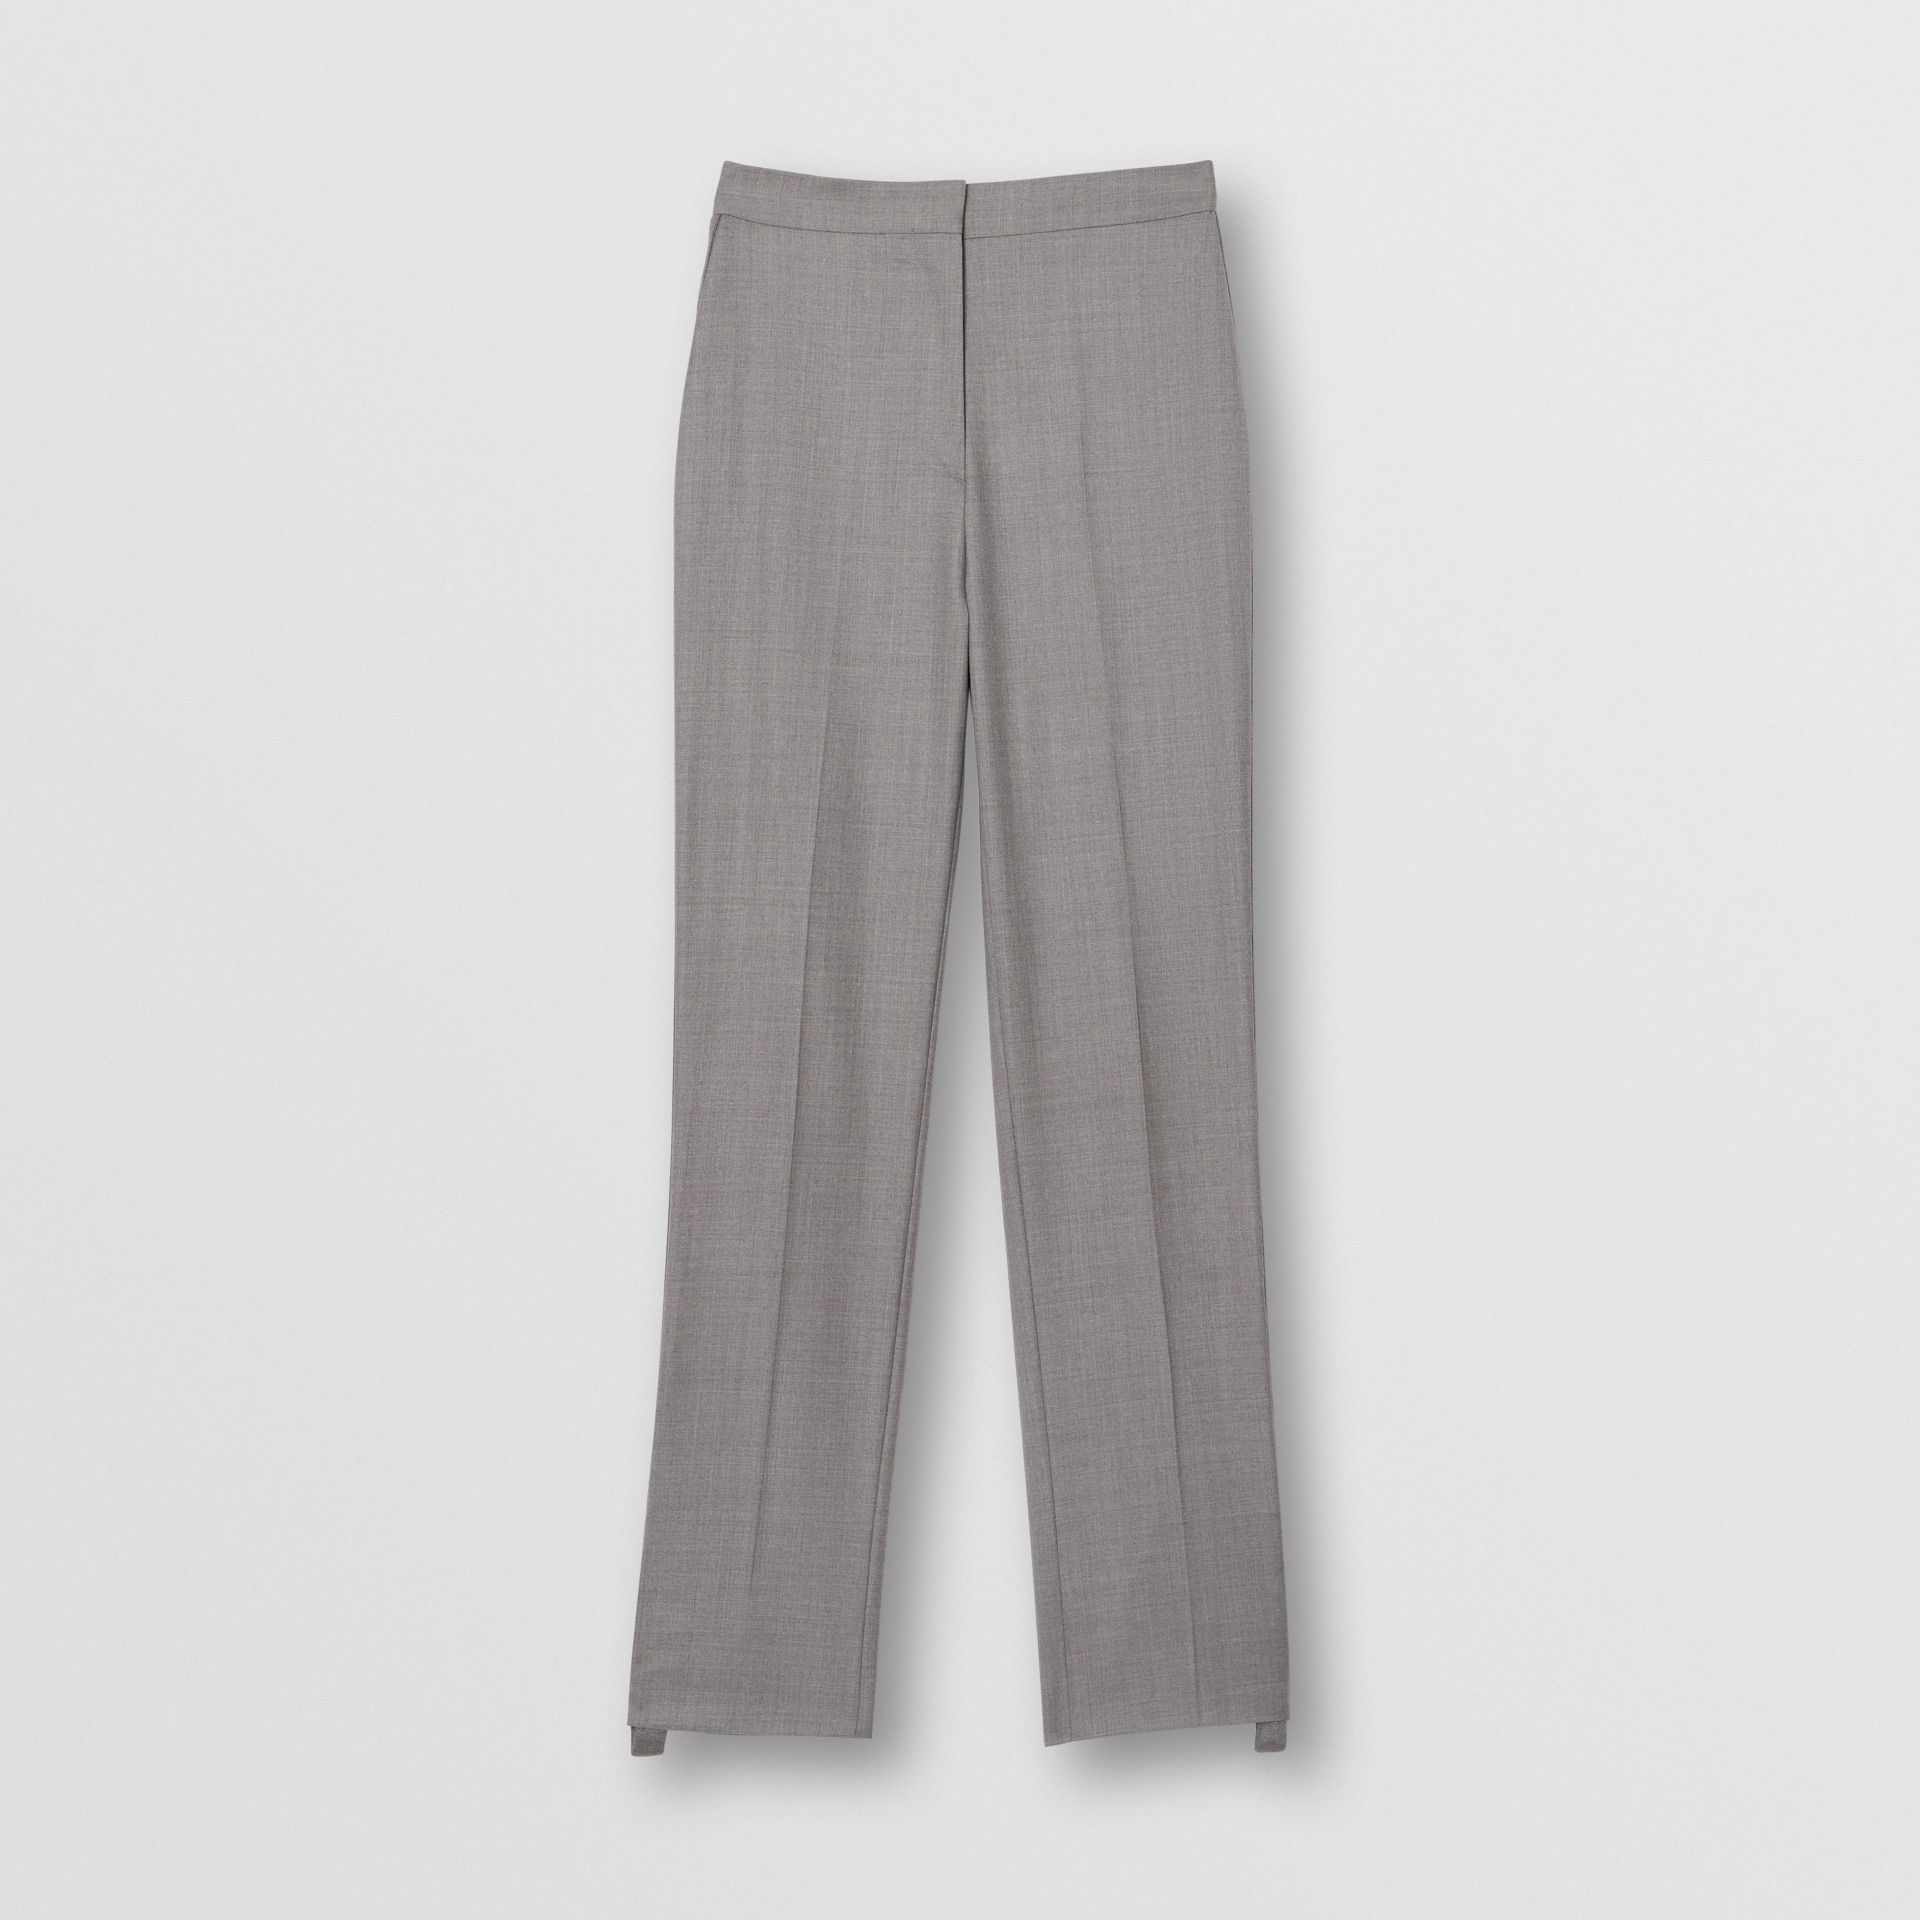 Stripe Detail Wool Trousers in Flint - Women | Burberry United States - gallery image 3